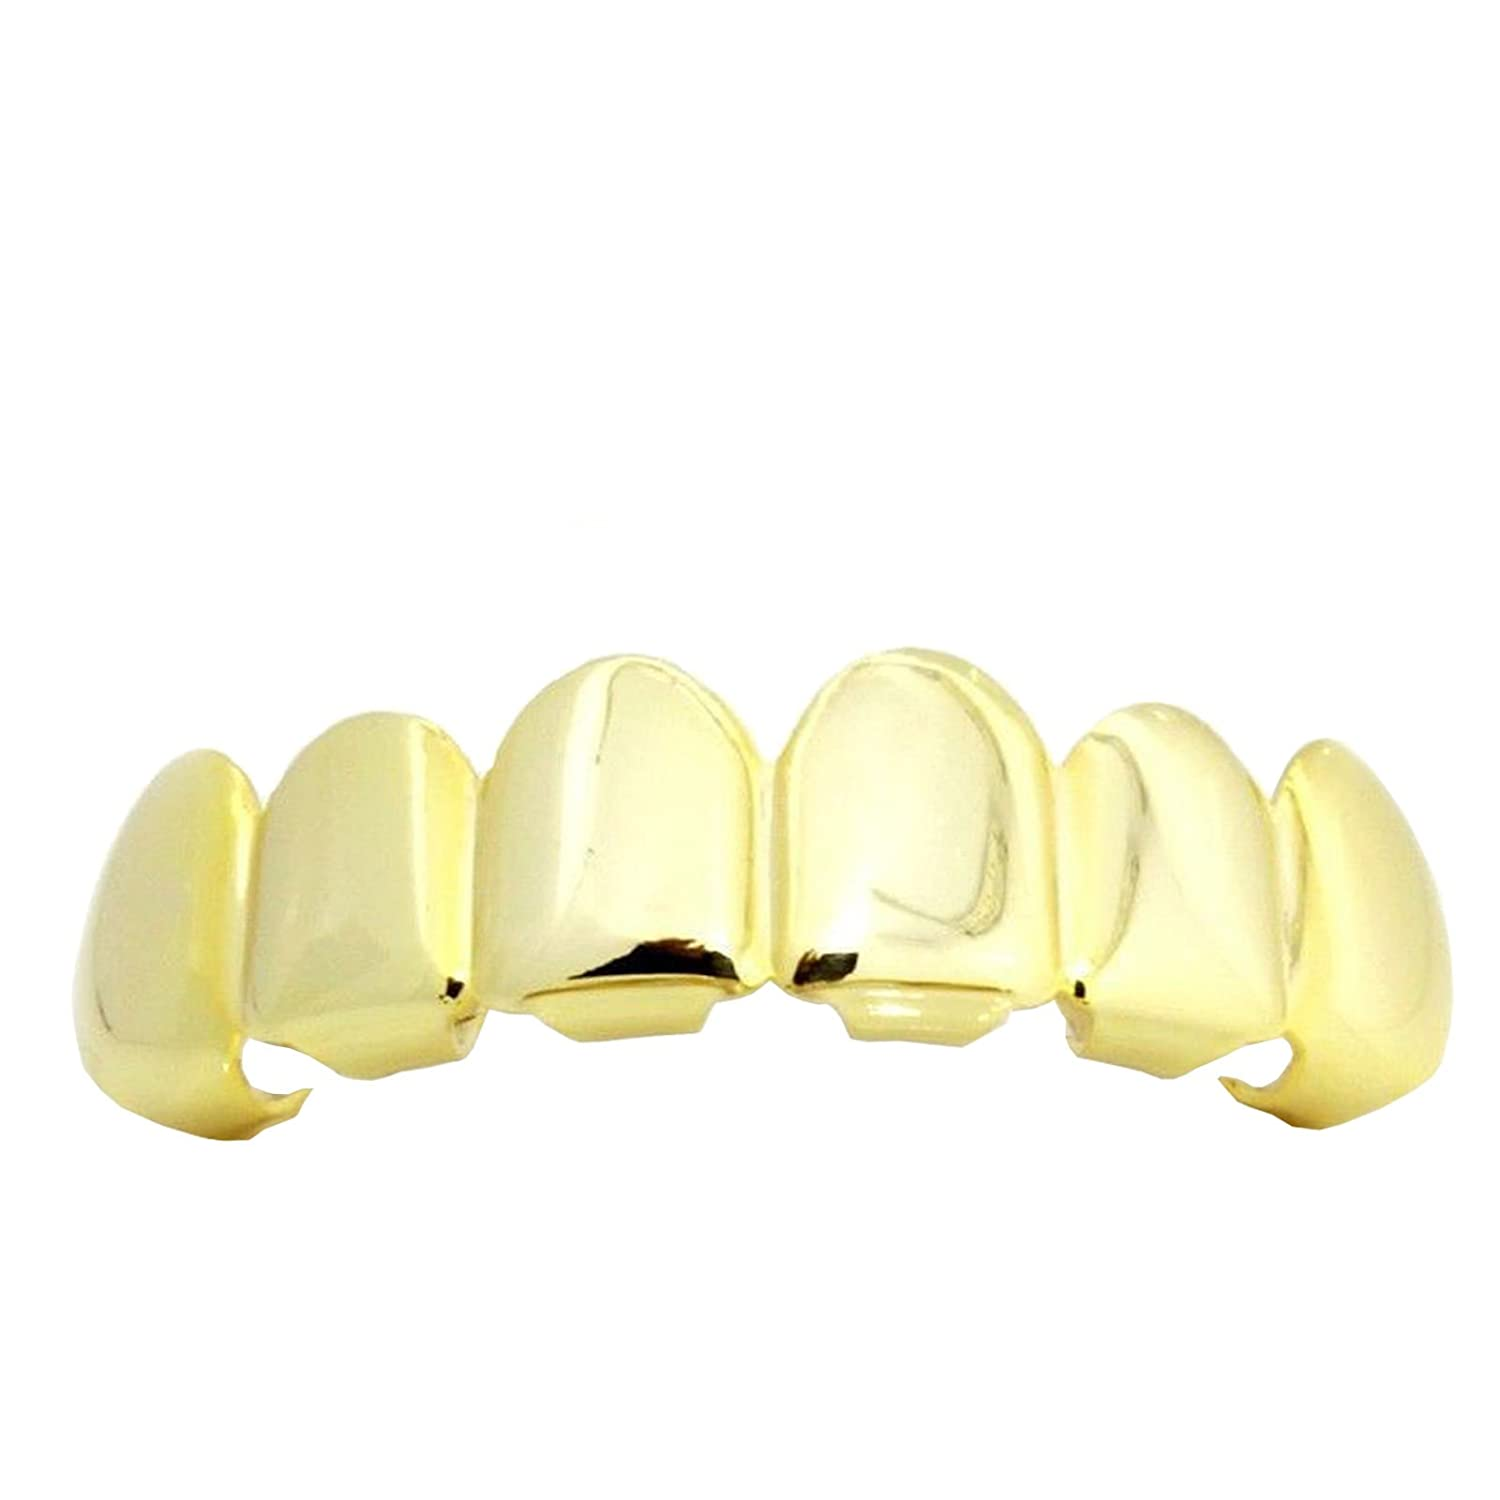 Hip Hop Gold Tone Removeable Mouth Grillz Top Upper Row Player Hip Hop Style